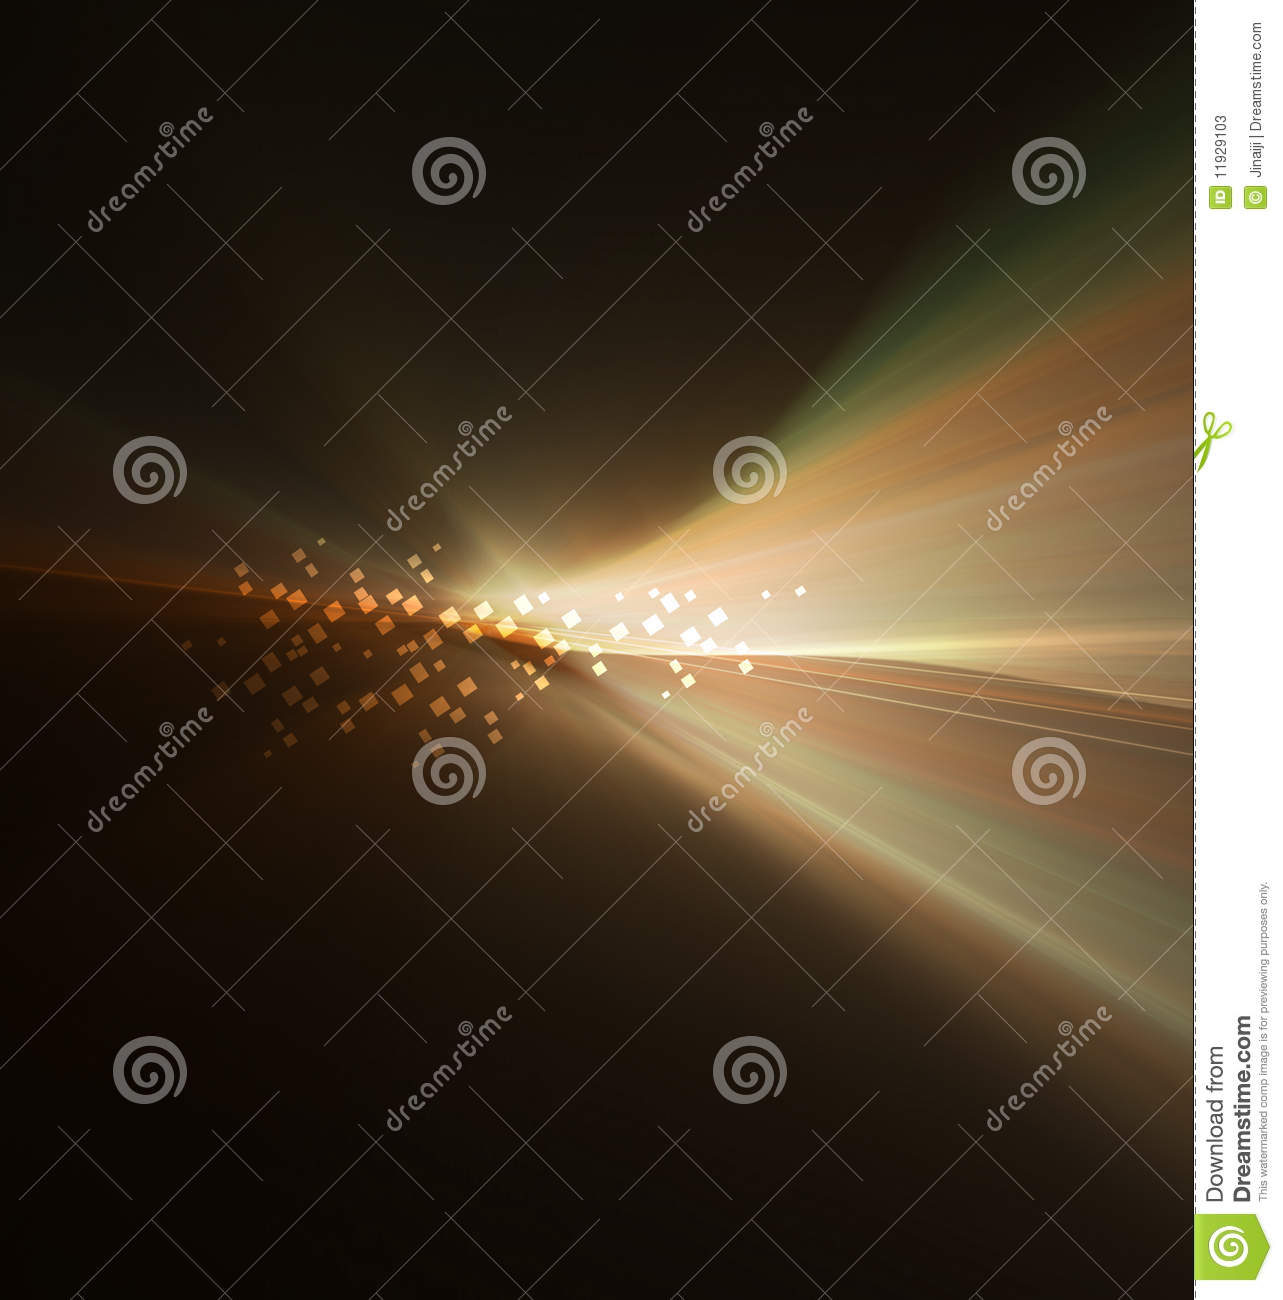 Business style background